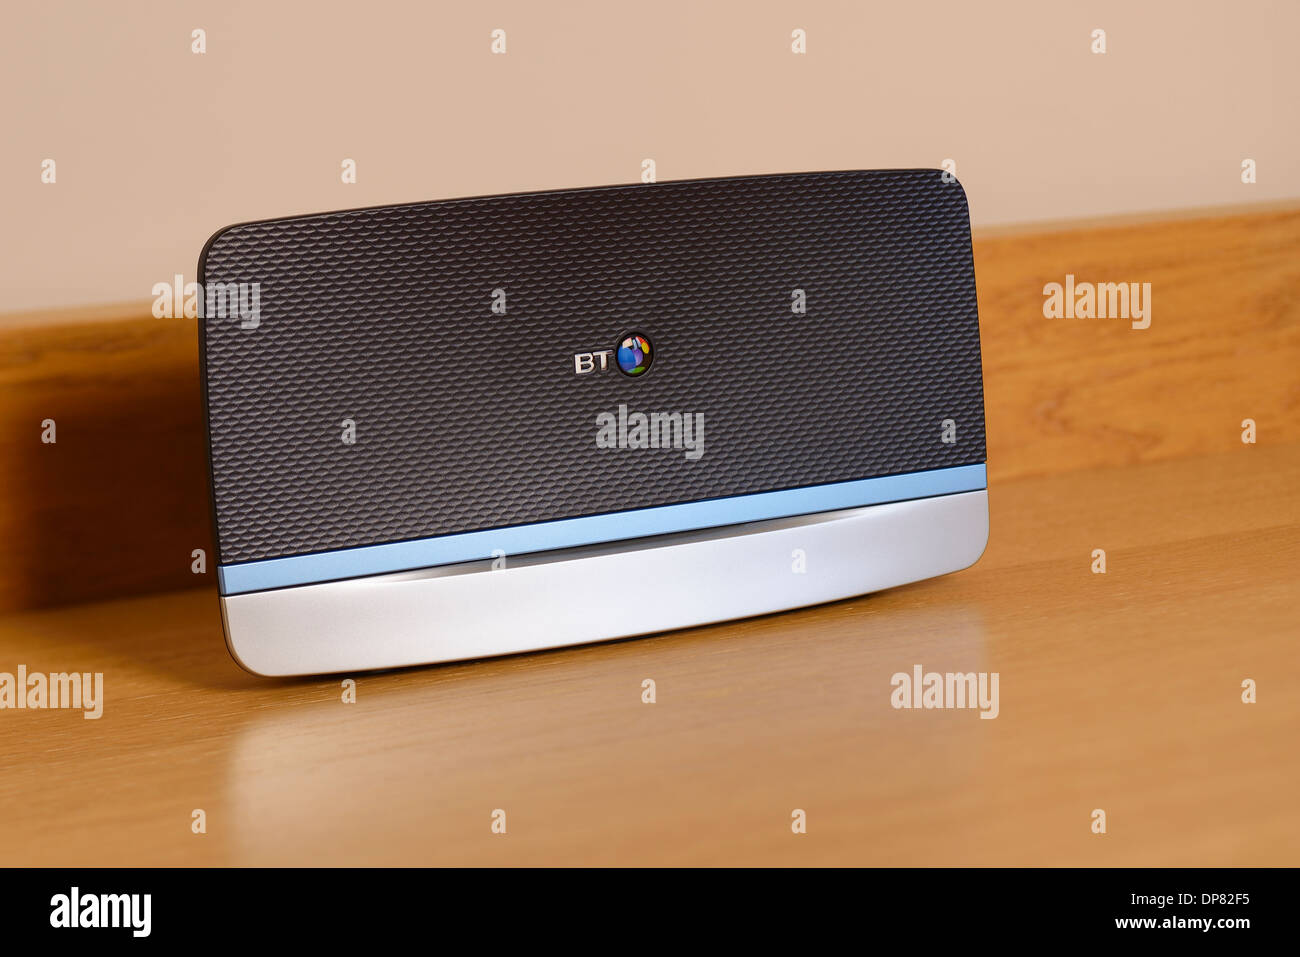 BT Home Hub internet modem routeur sans fil 5 Photo Stock